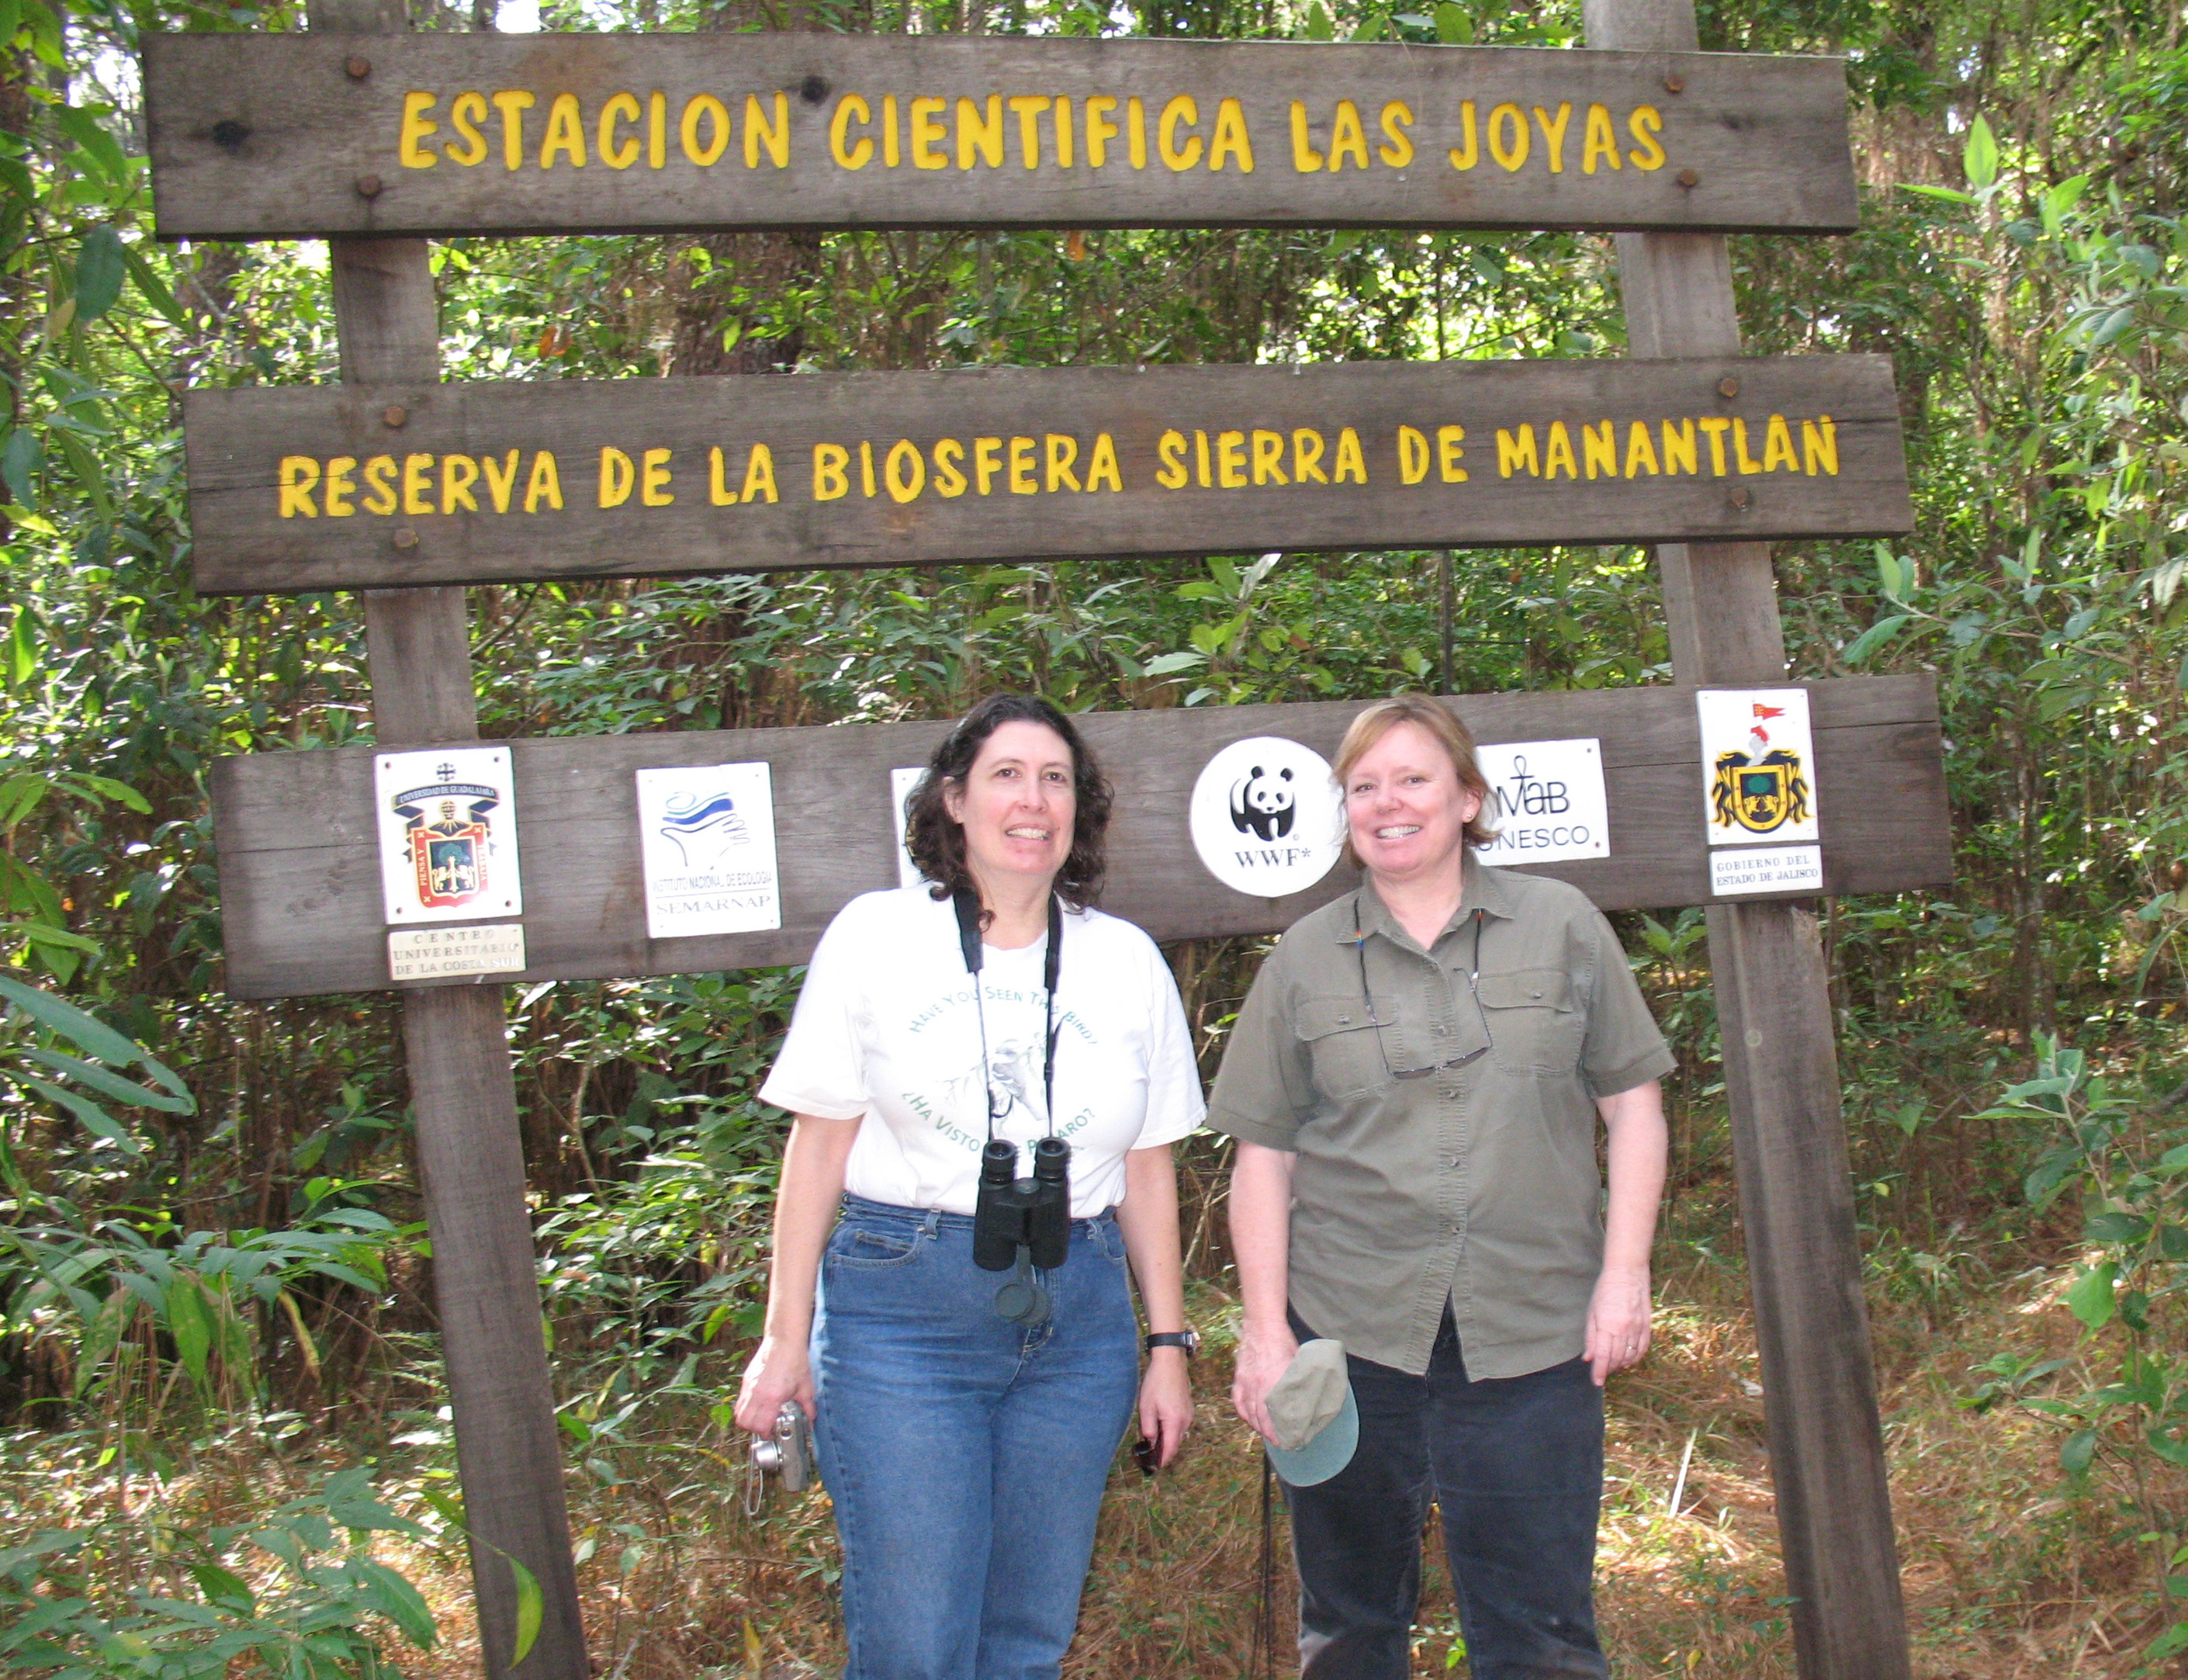 Photo: Two women in front of sign for Las Joyas Research Station.